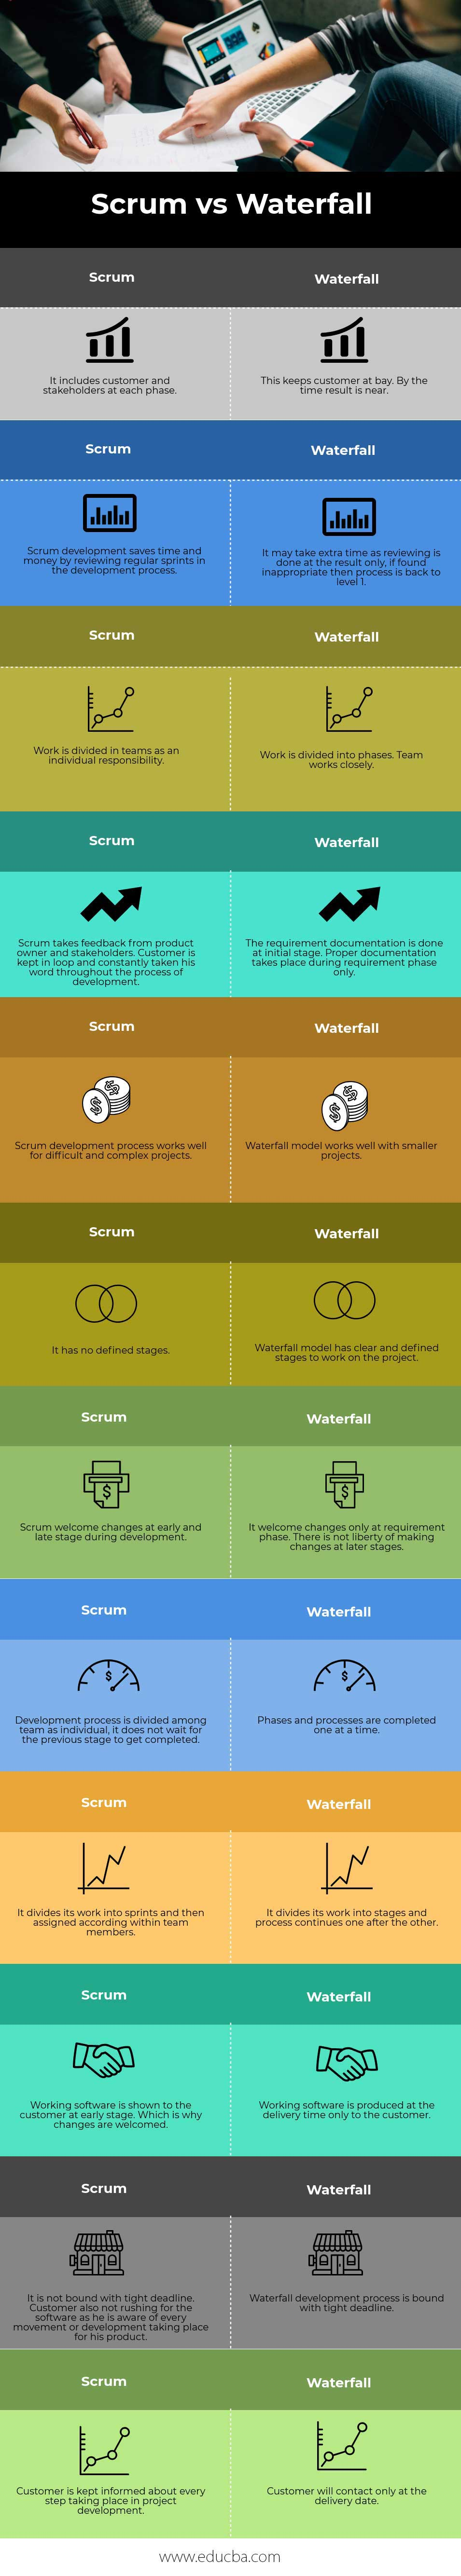 Scrum-vs-Waterfall info